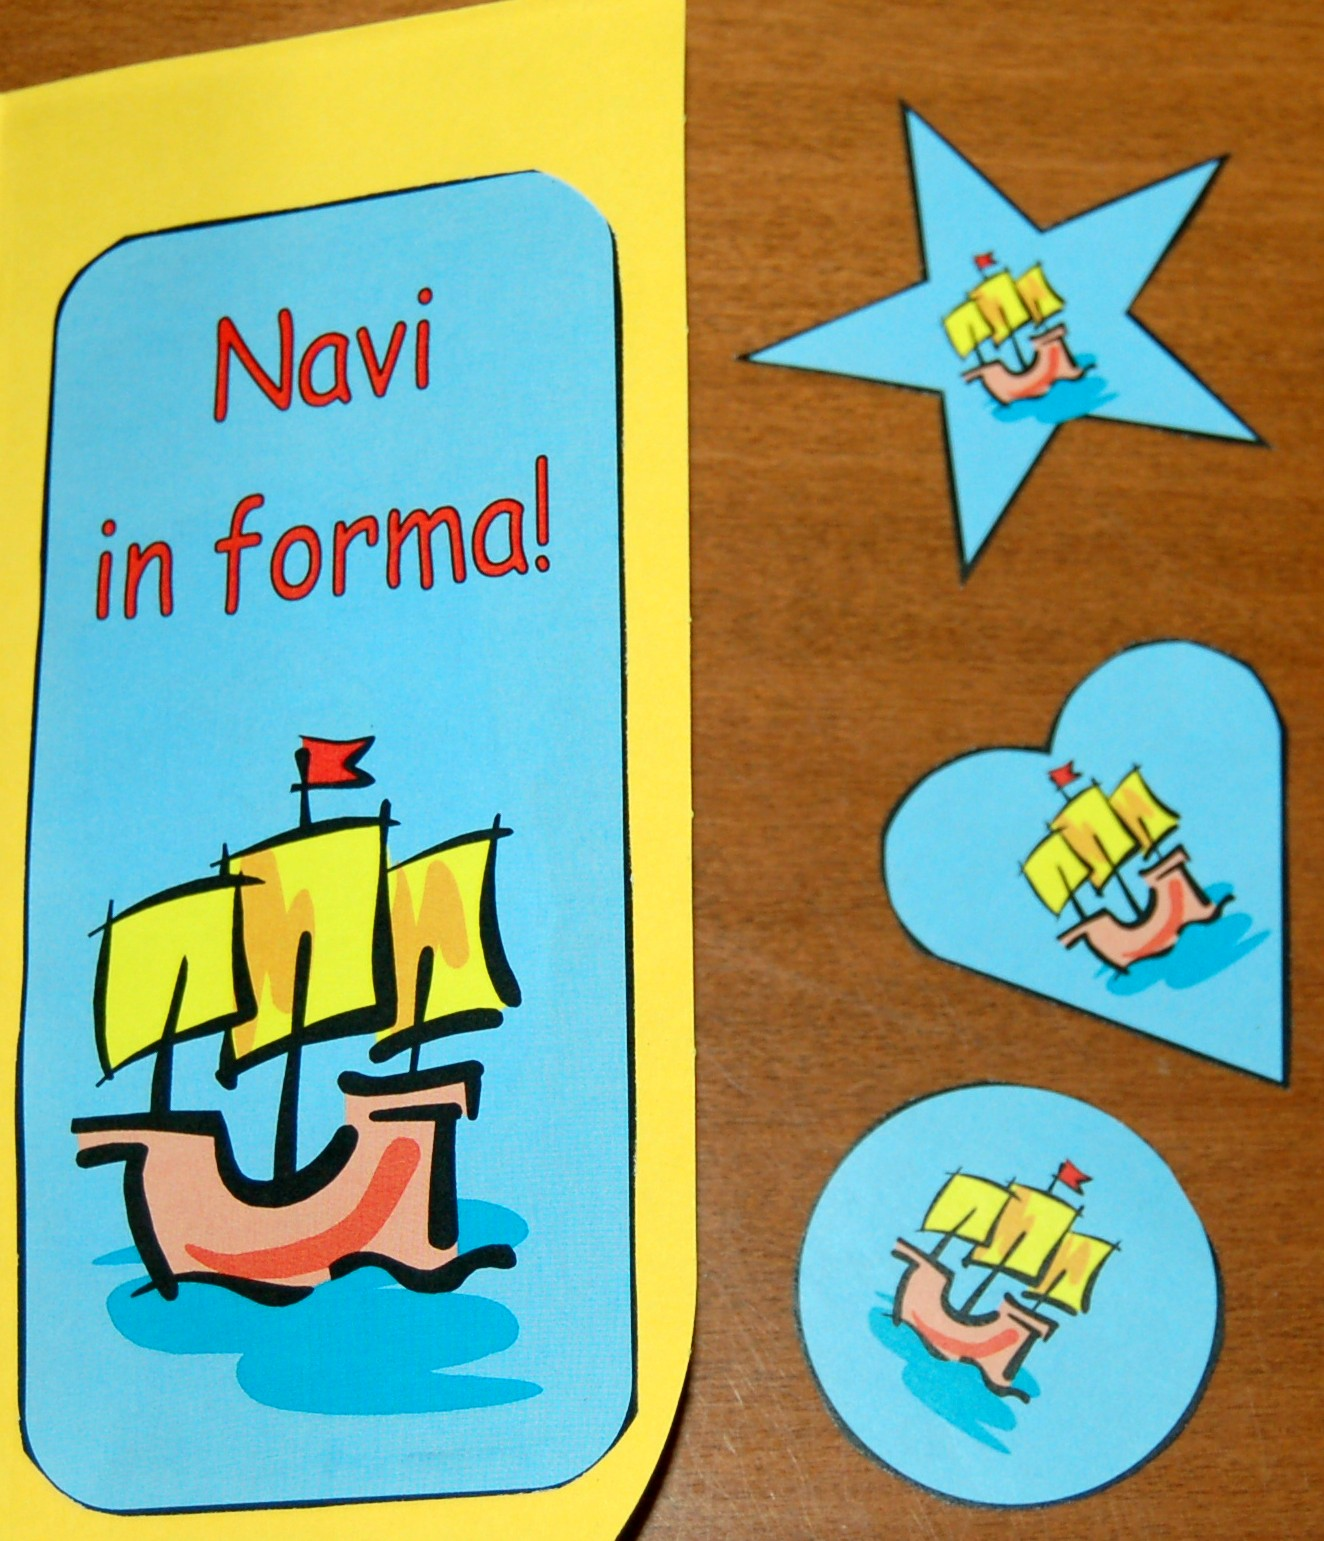 navi4